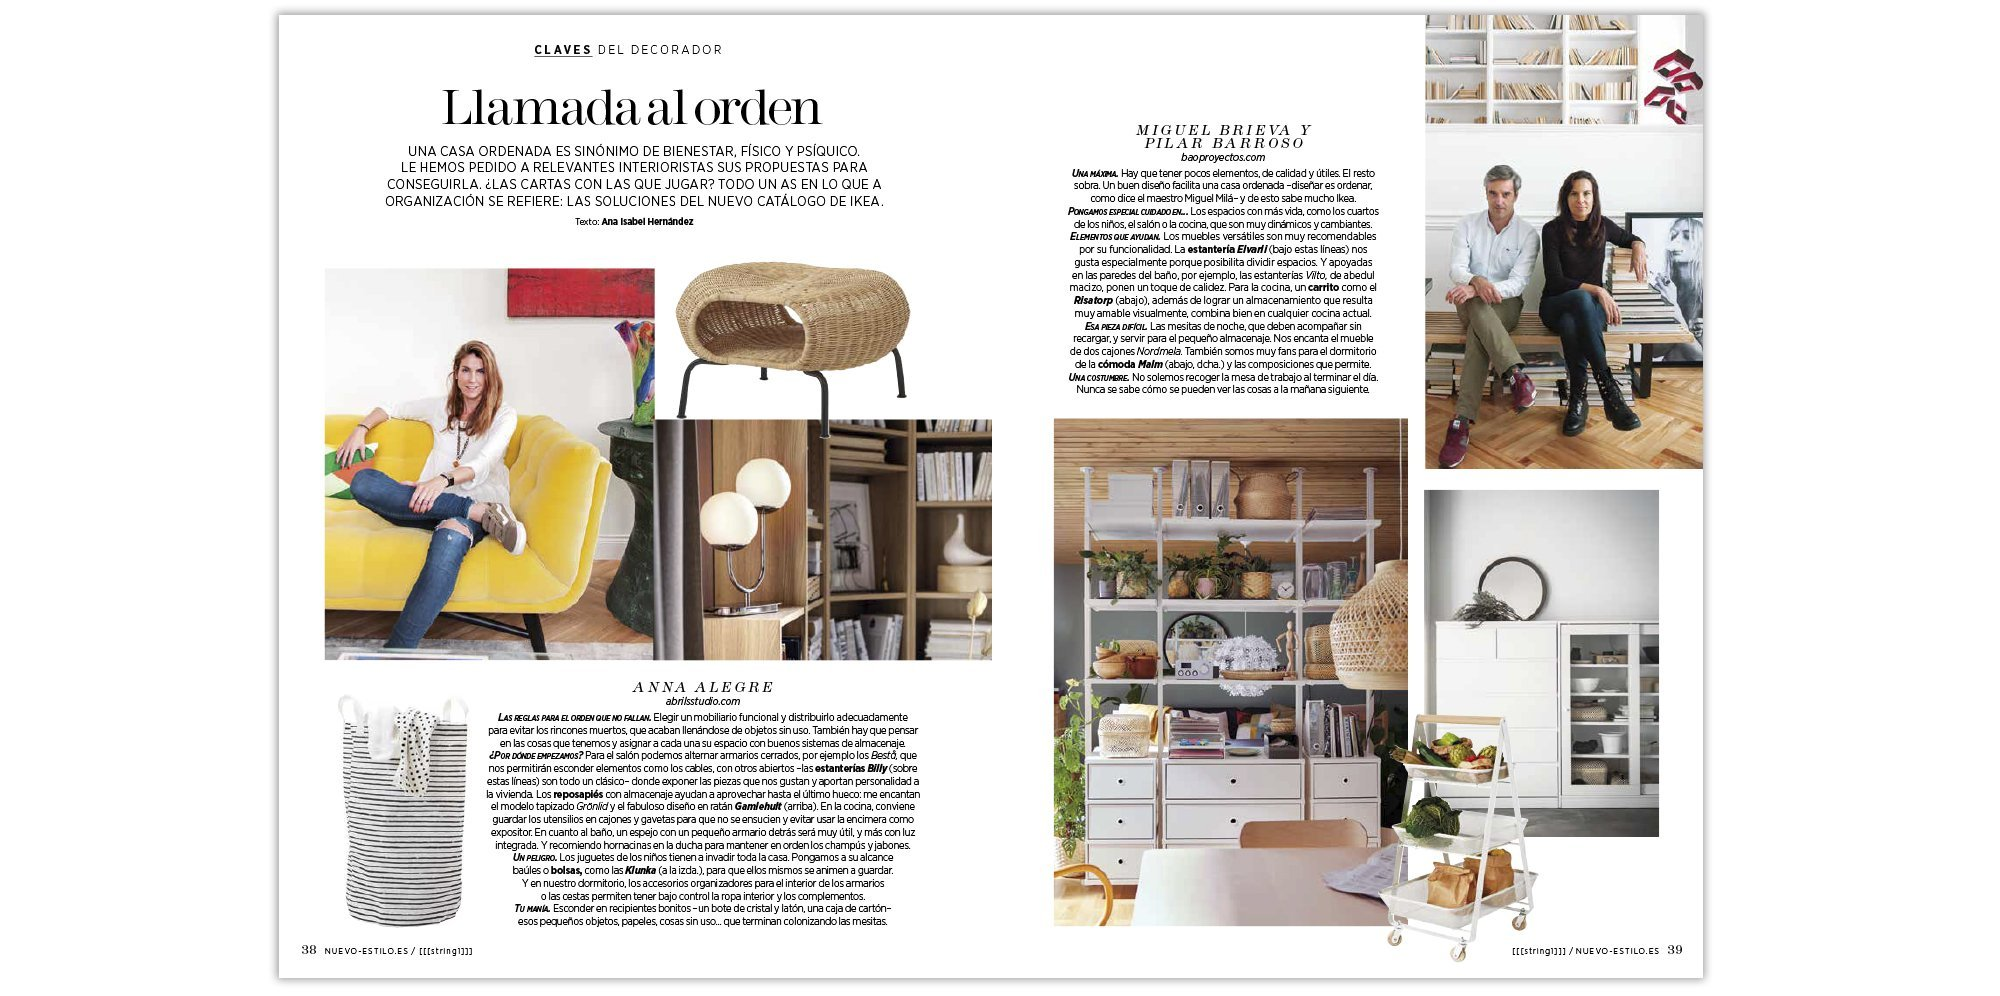 IKEA-abrilsstudio_annaalegre-Press-NE-01